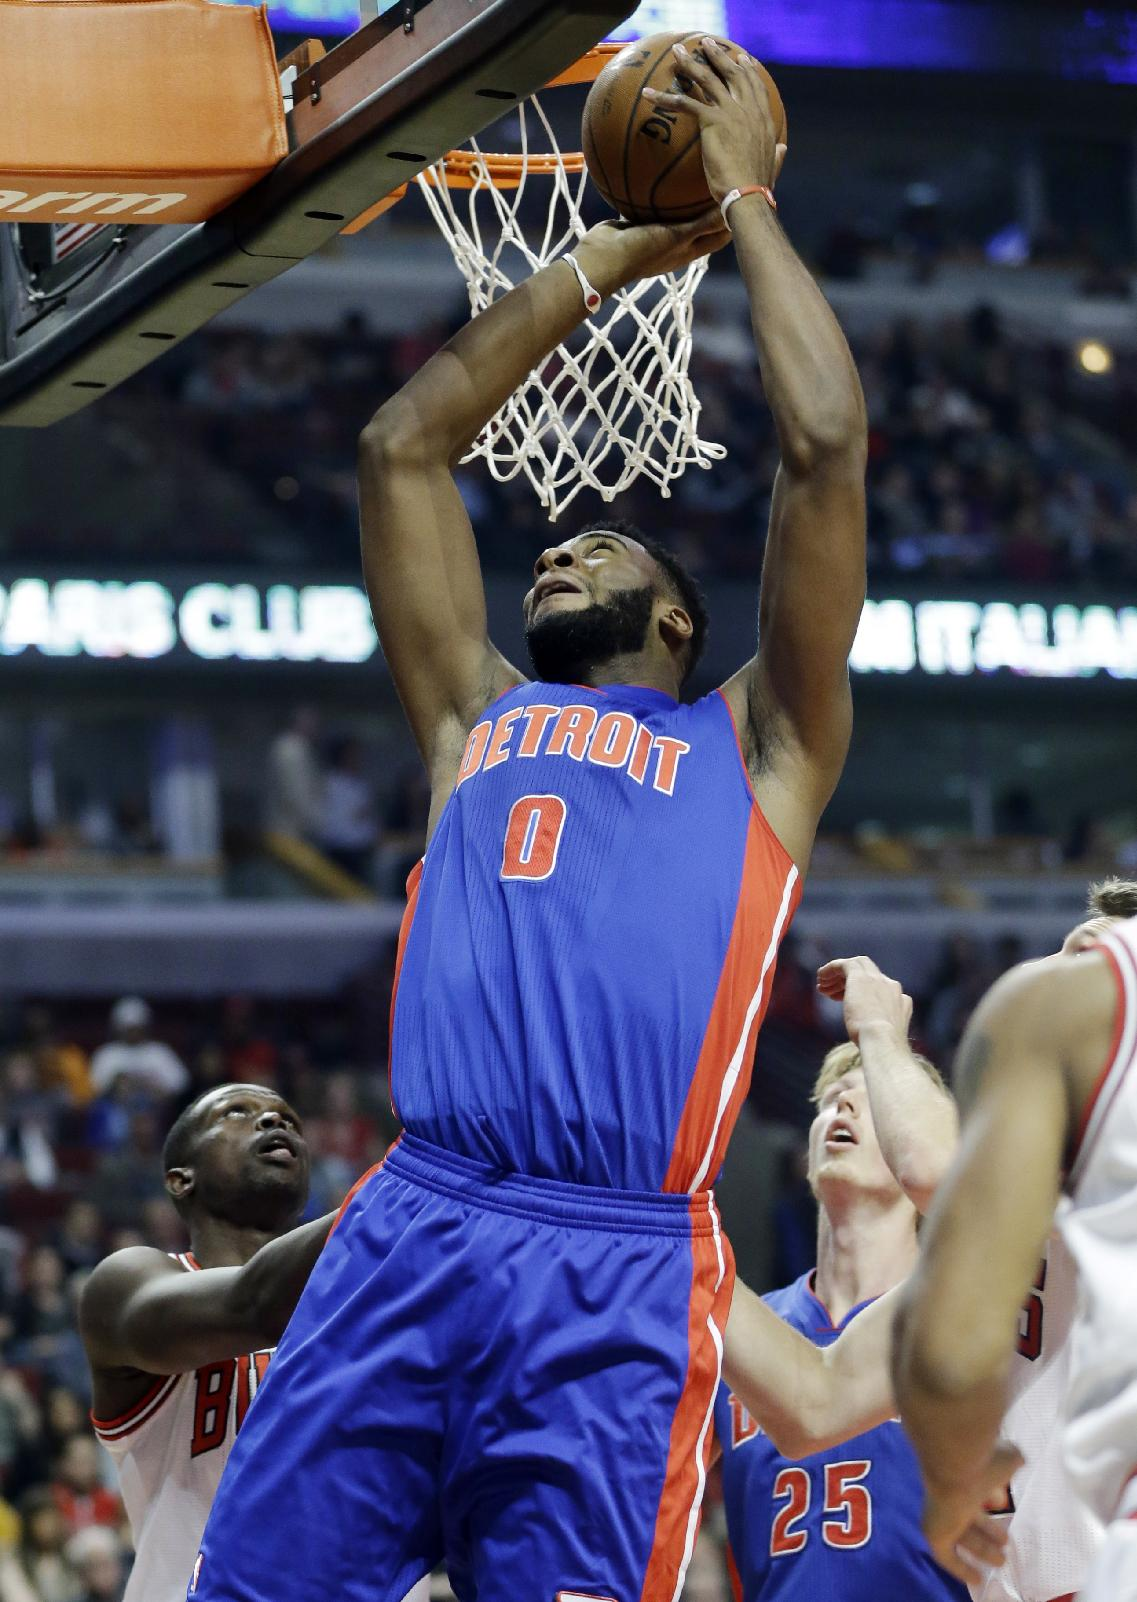 Detroit Pistons center Andre Drummond (0) goes up for a shot against the Chicago Bulls during the first half of an NBA preseason basketball game in Chicago on Wednesday, Oct. 16, 2013